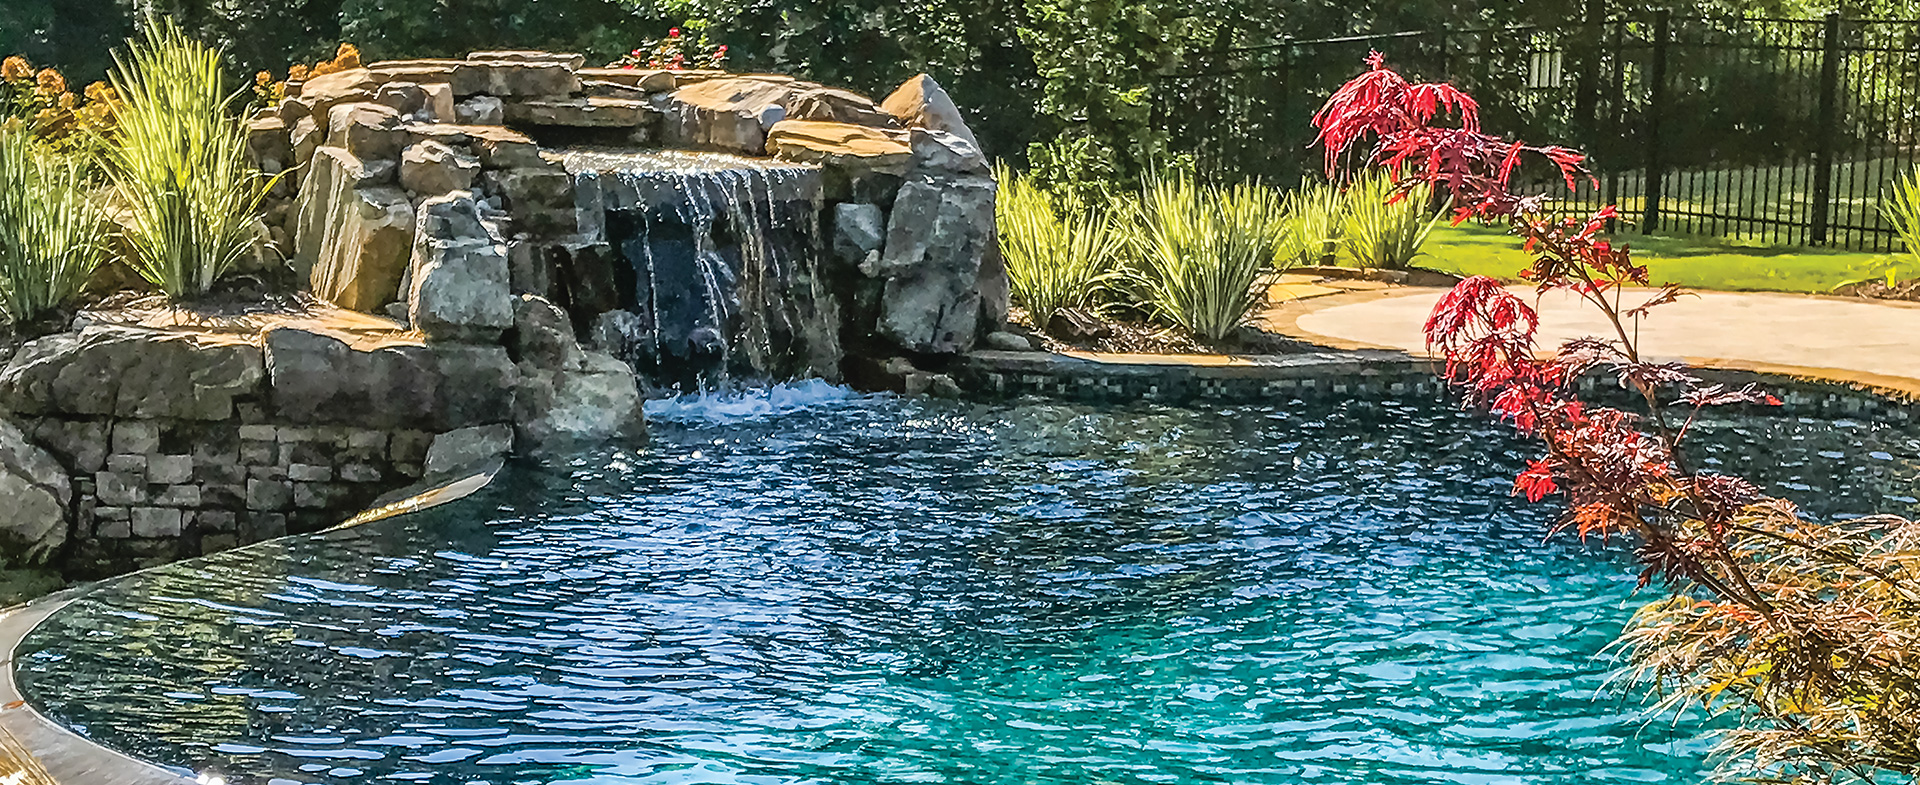 Home - Southern Pools & Outdoor Living on Southern Pools And Outdoor Living  id=72580